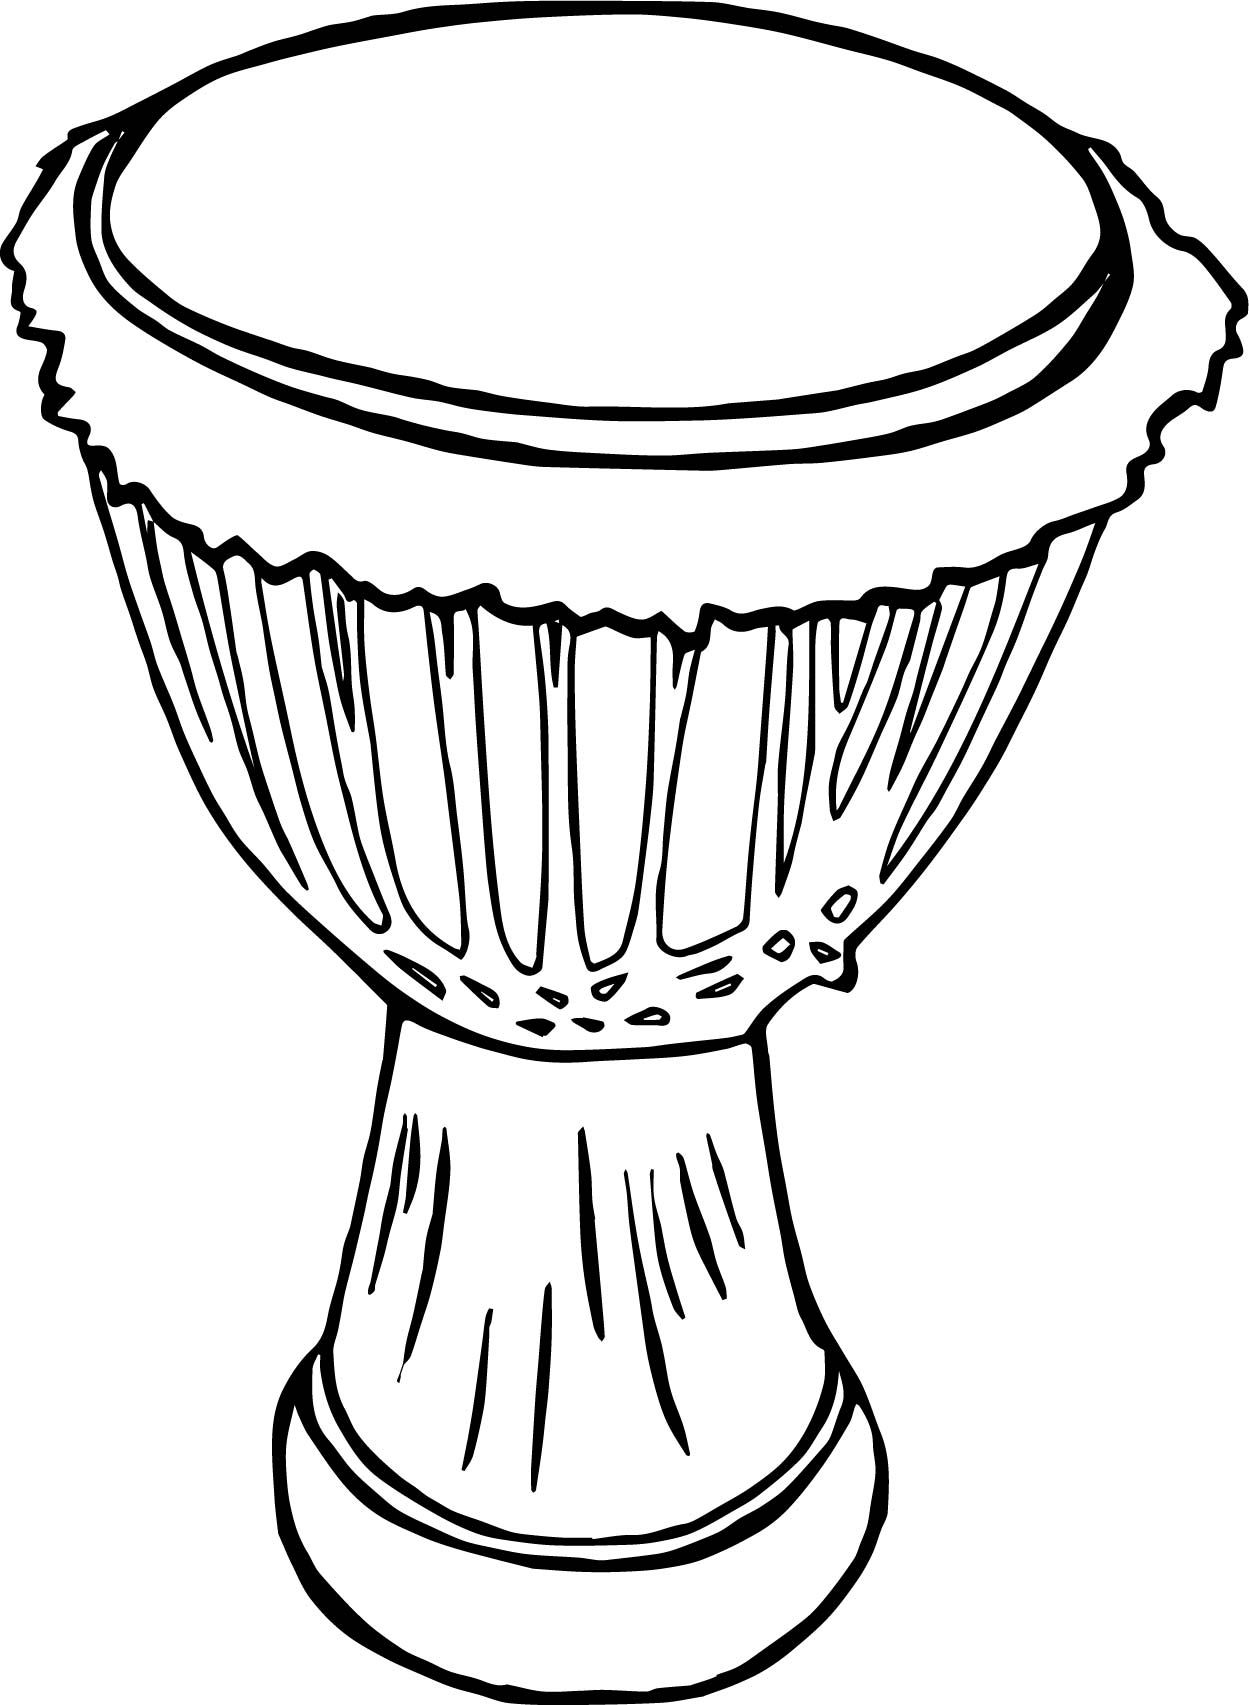 african drum coloring page coloring page african drum to color online coloringcrew coloring page african drum